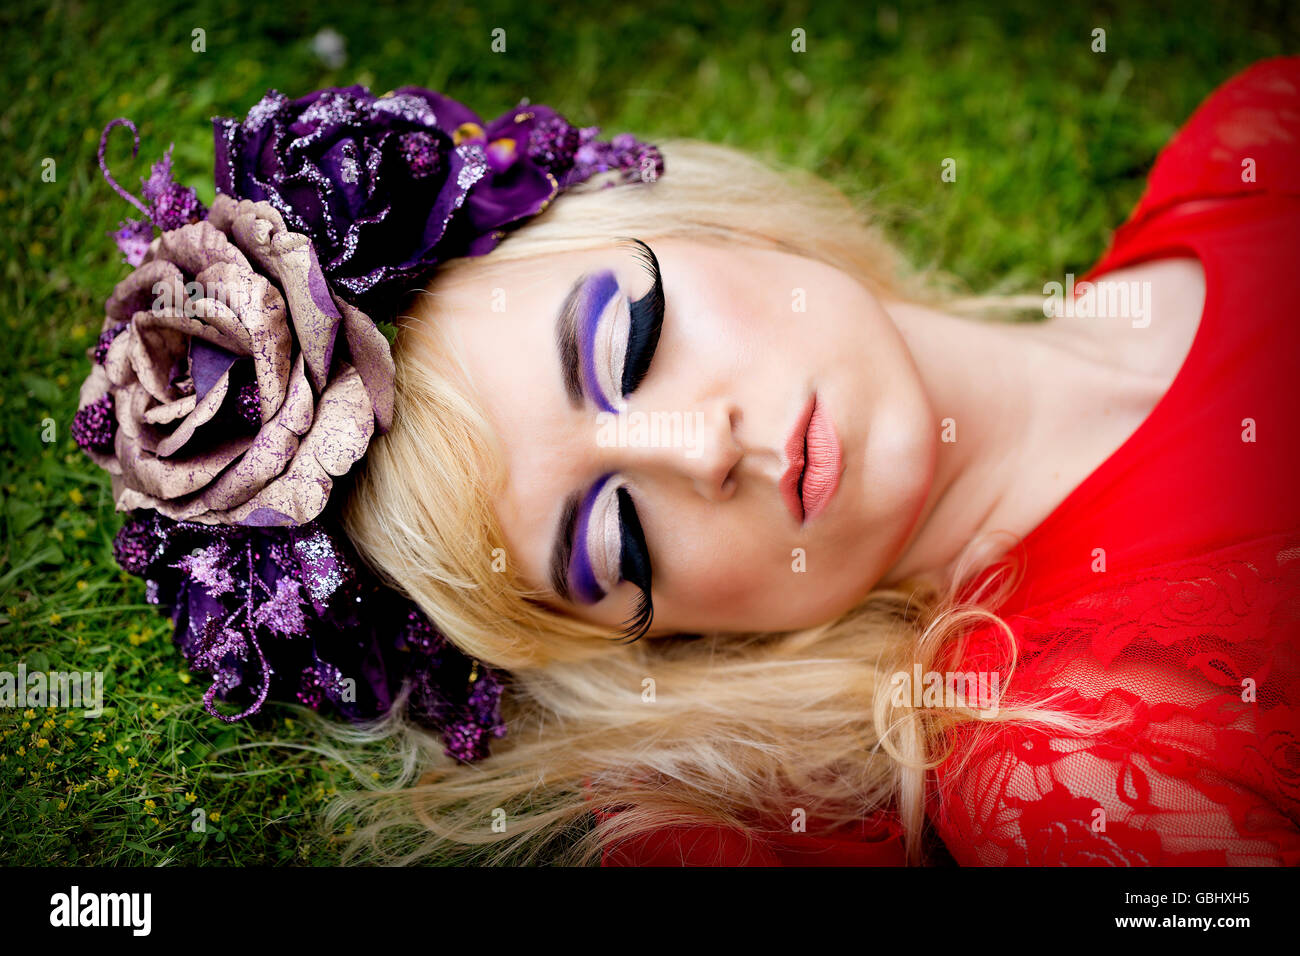 Blonde model delicate features purple flower crown winged stock blonde model delicate features purple flower crown winged eyeliner huge eyelashes red lace dress lying sleeping on grass izmirmasajfo Images